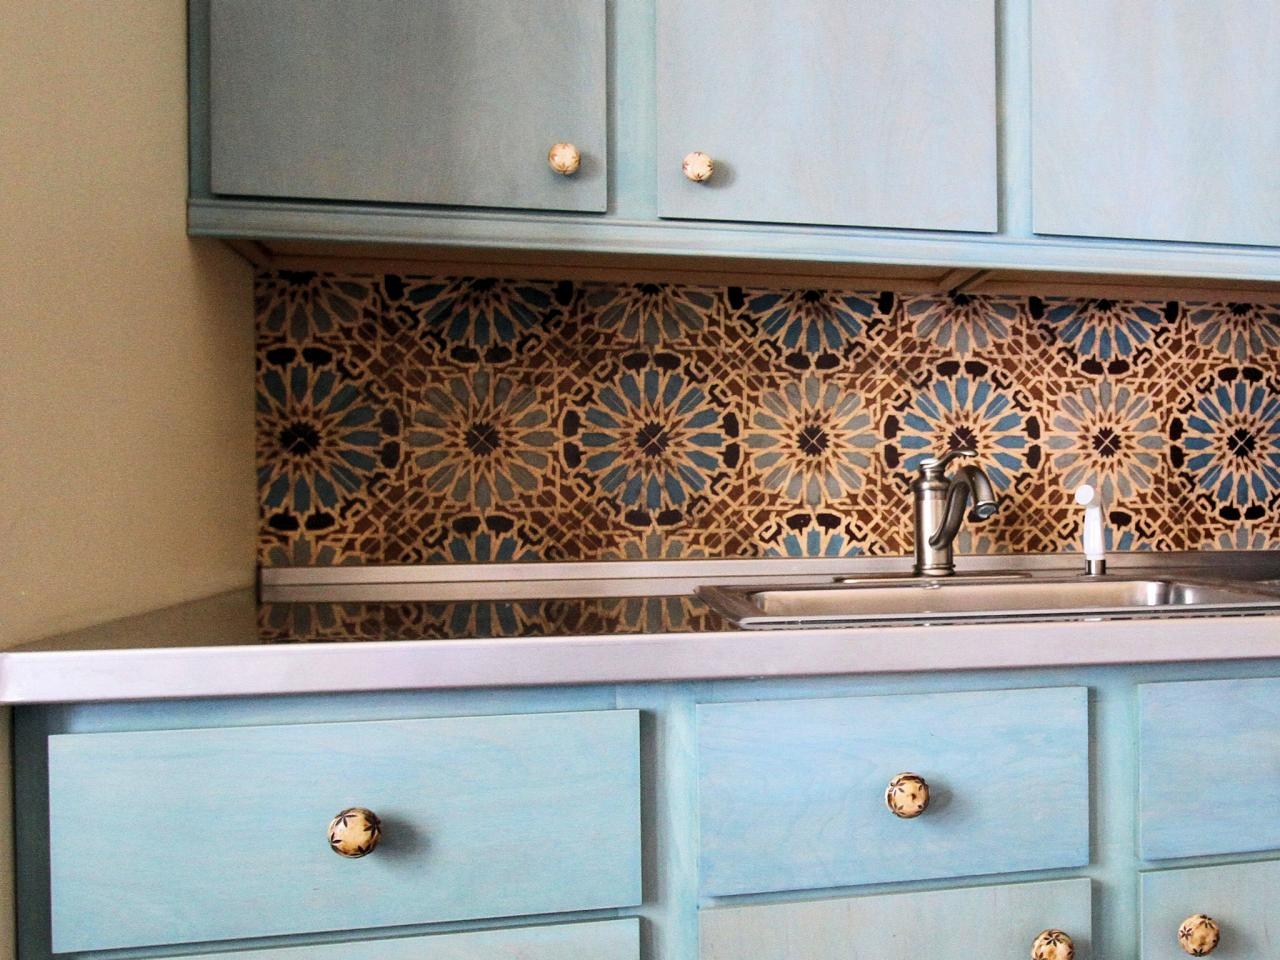 Kitchen Backsplash Idea kitchen tile backsplash ideas: pictures & tips from hgtv | hgtv